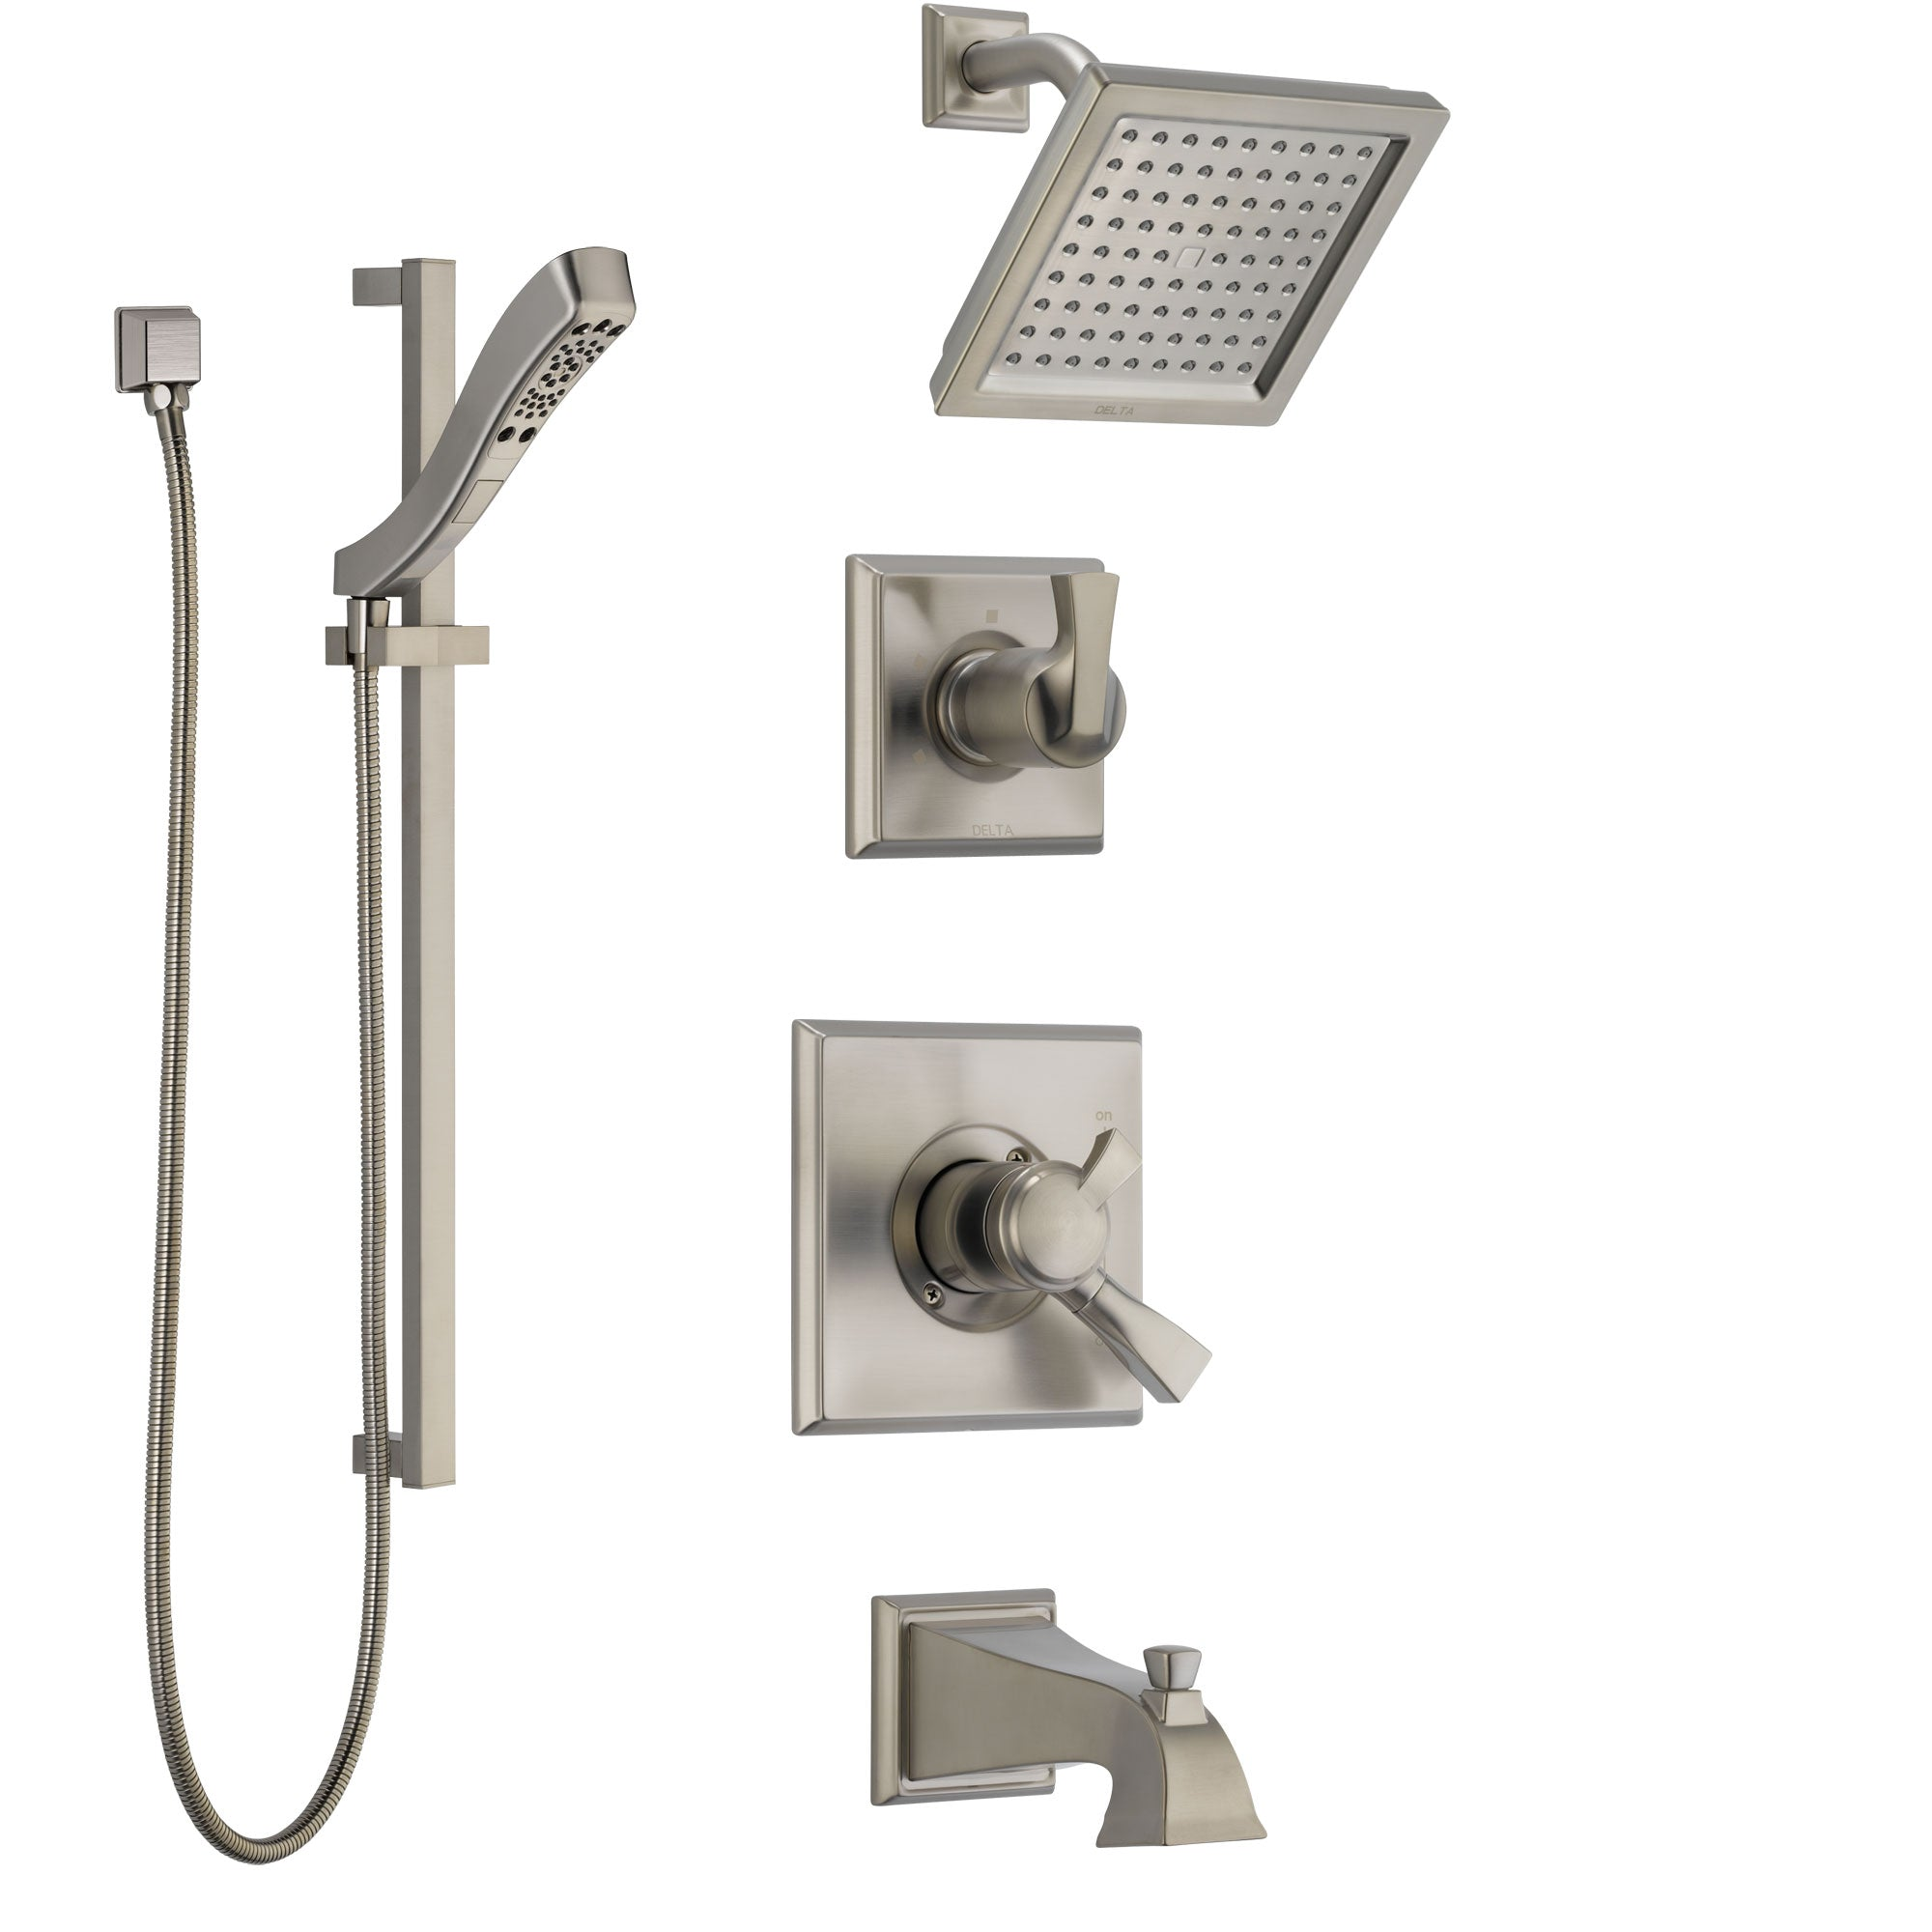 Delta Dryden Stainless Steel Finish Tub and Shower System with Dual Control Handle, Diverter, Showerhead, and Hand Shower with Slidebar SS174511SS5